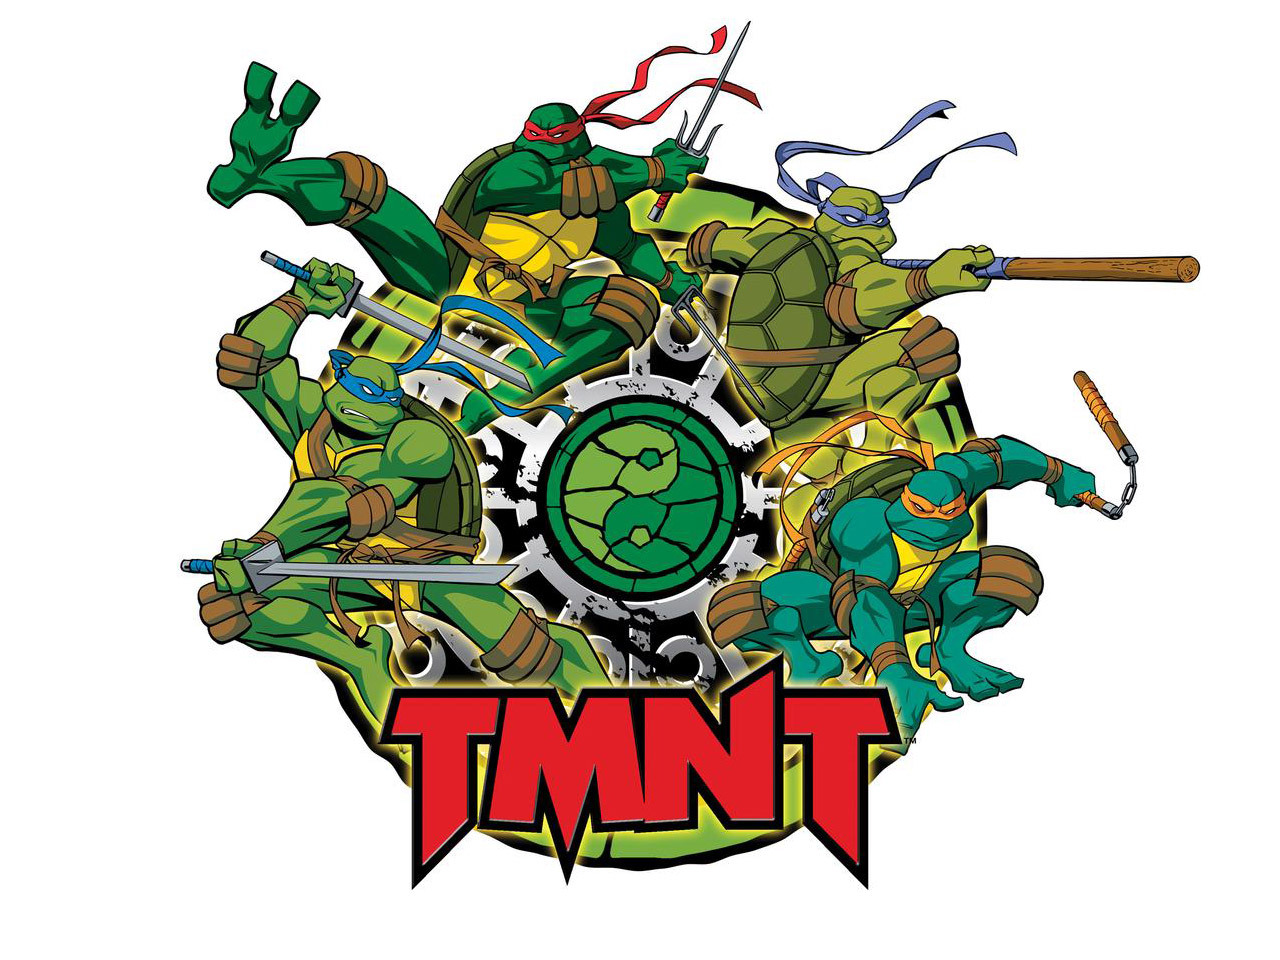 12316 download wallpaper Cartoon, Tmnt screensavers and pictures for free